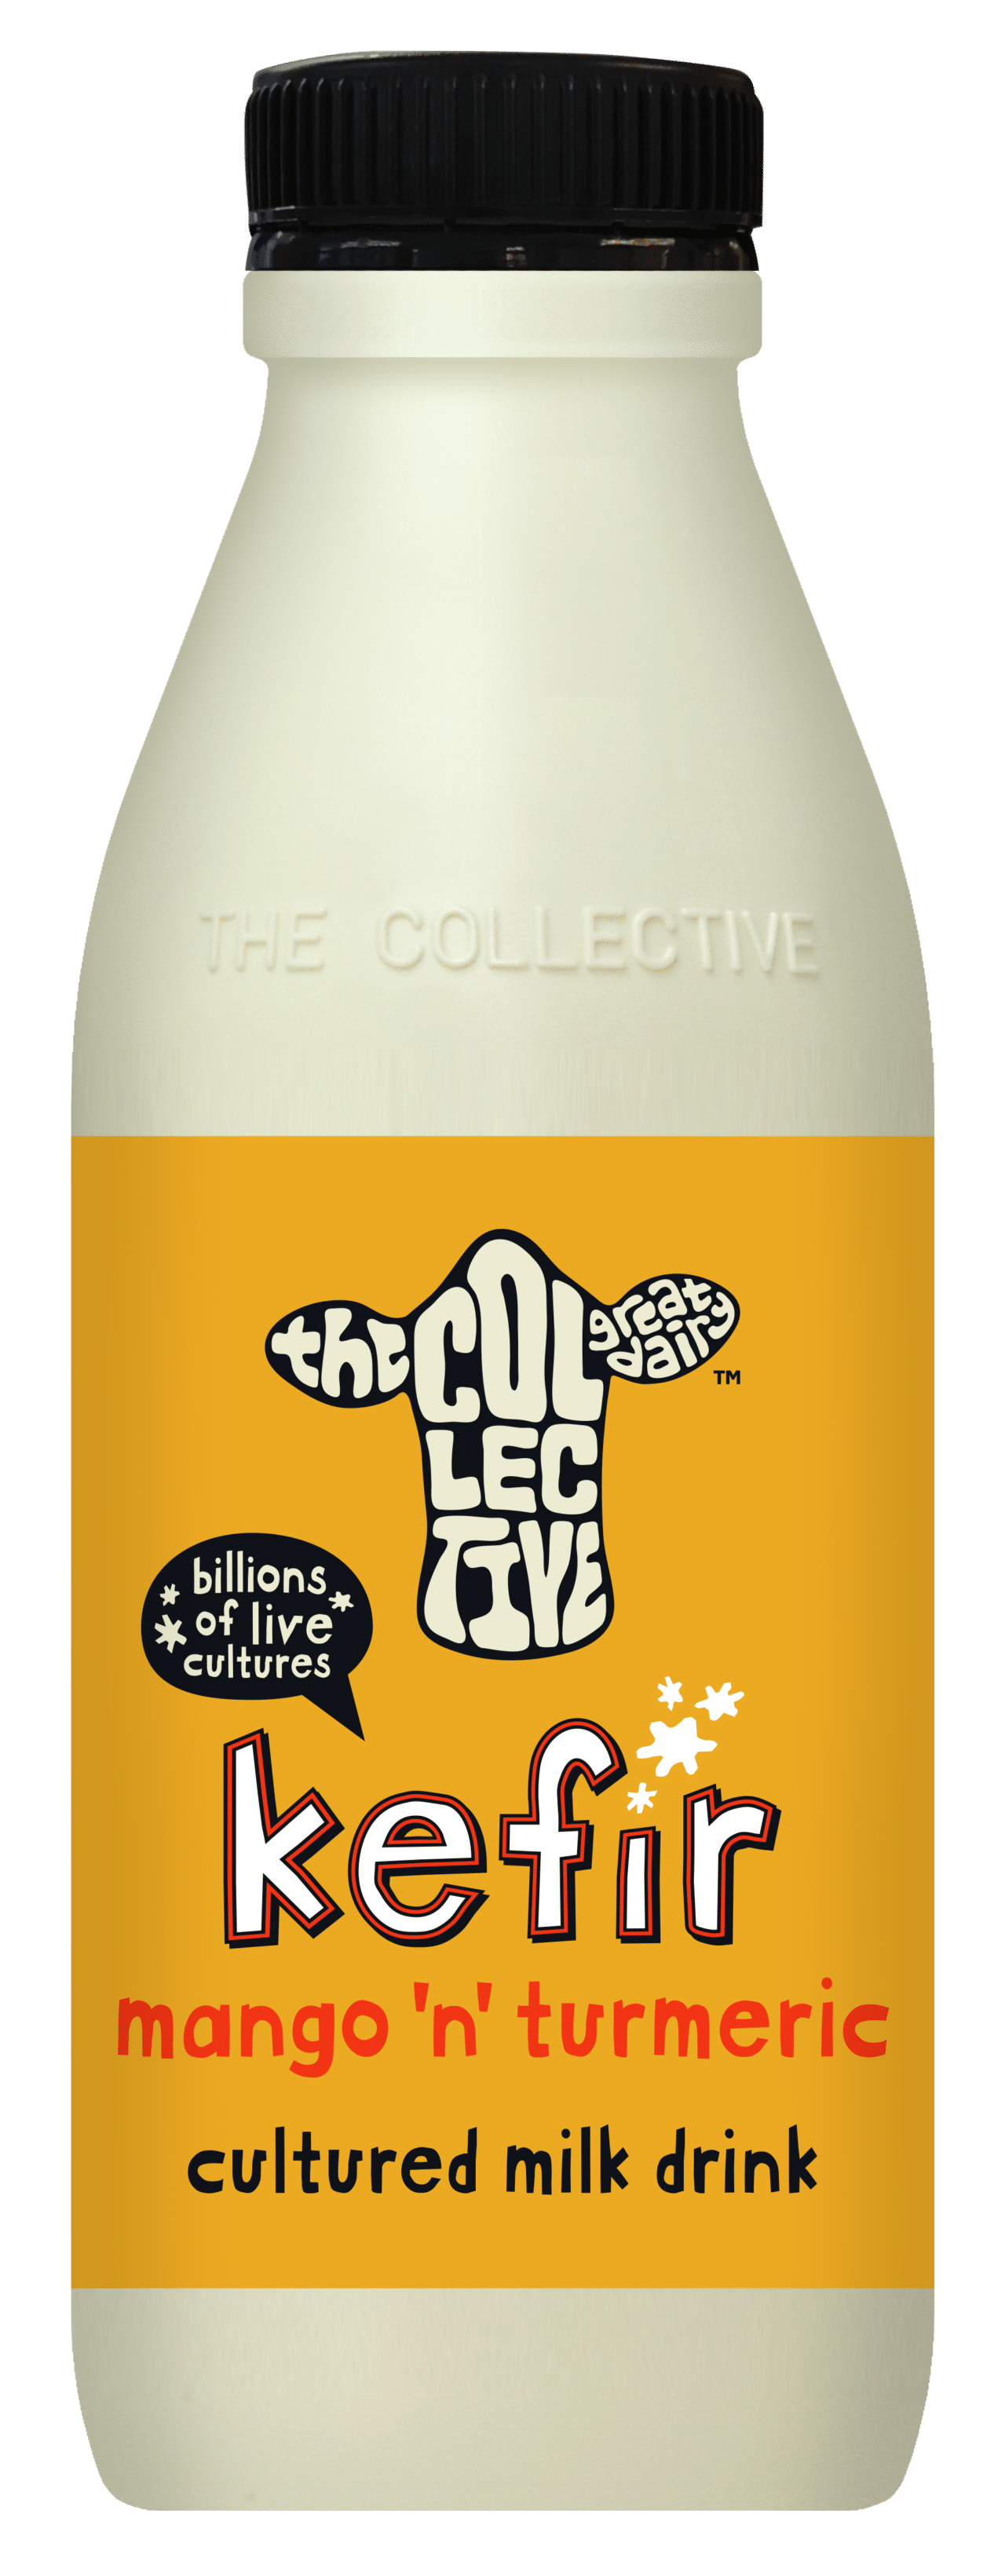 The Collective Gives Good Gut With New Kefir Www